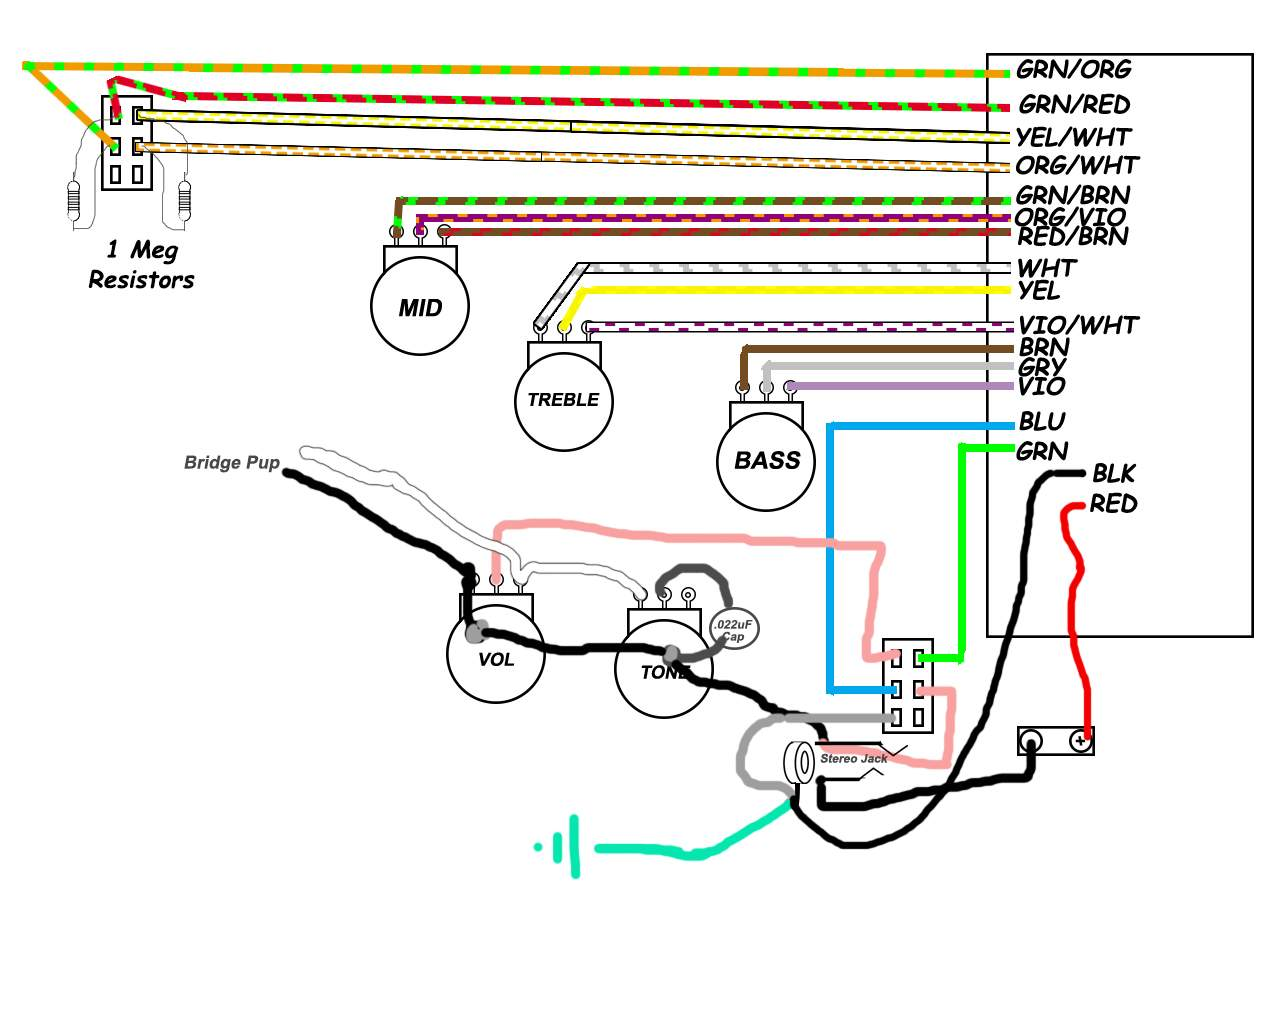 hight resolution of aguilar obp 3 wiring diagram wiring diagram imgaguilar obp 3 wiring diagram